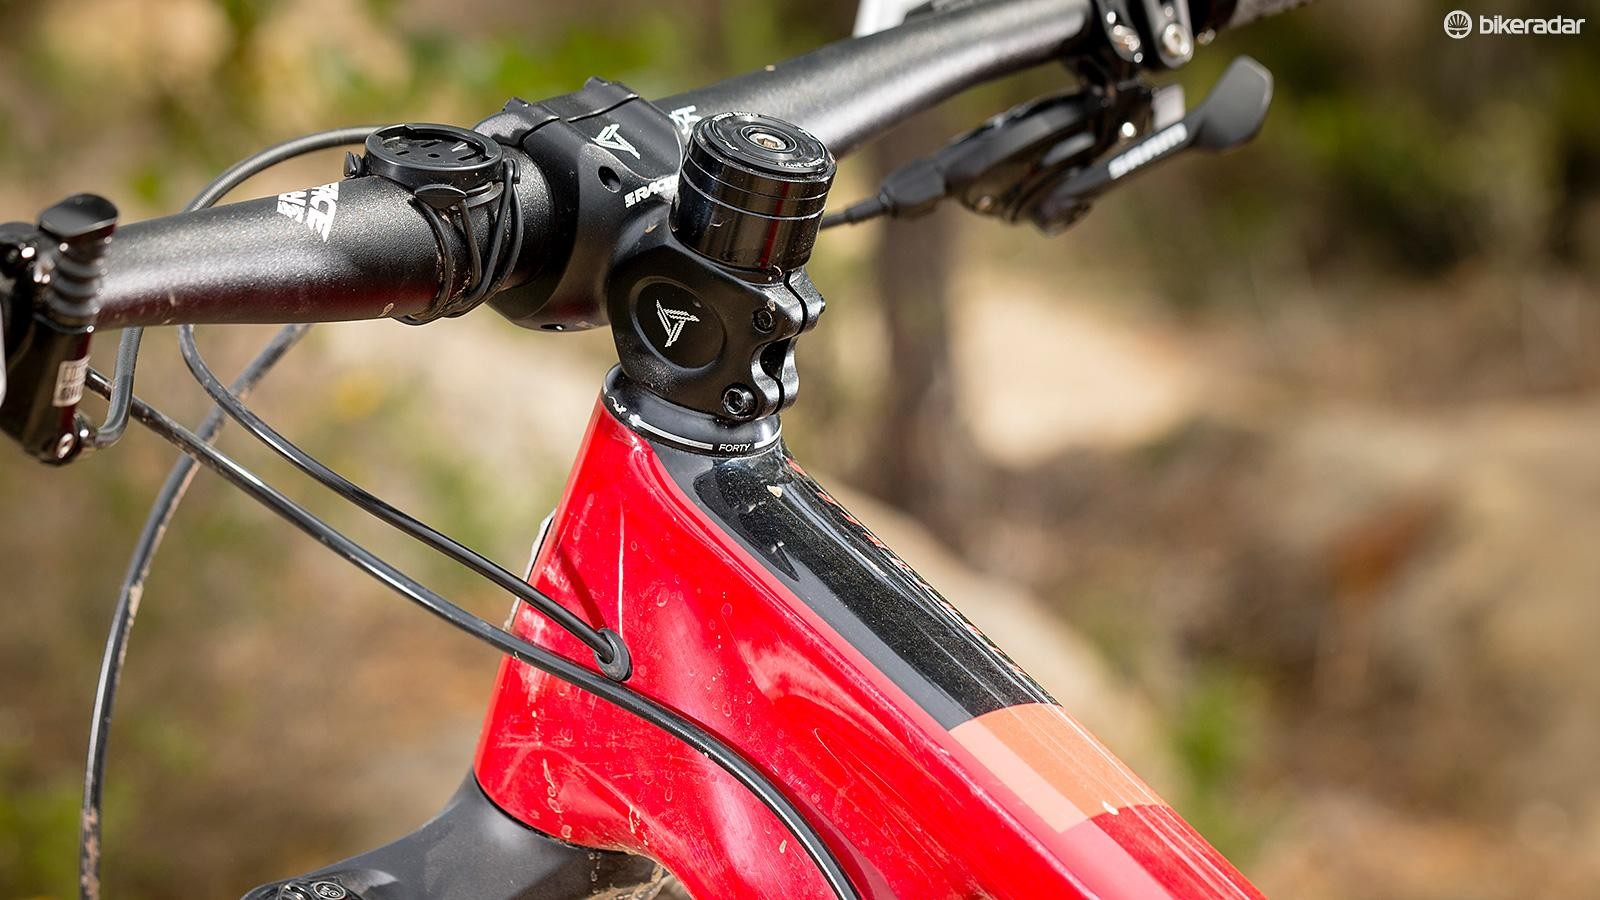 The slack 66.5-degree front end boosted confidence when taking on rocky terrain